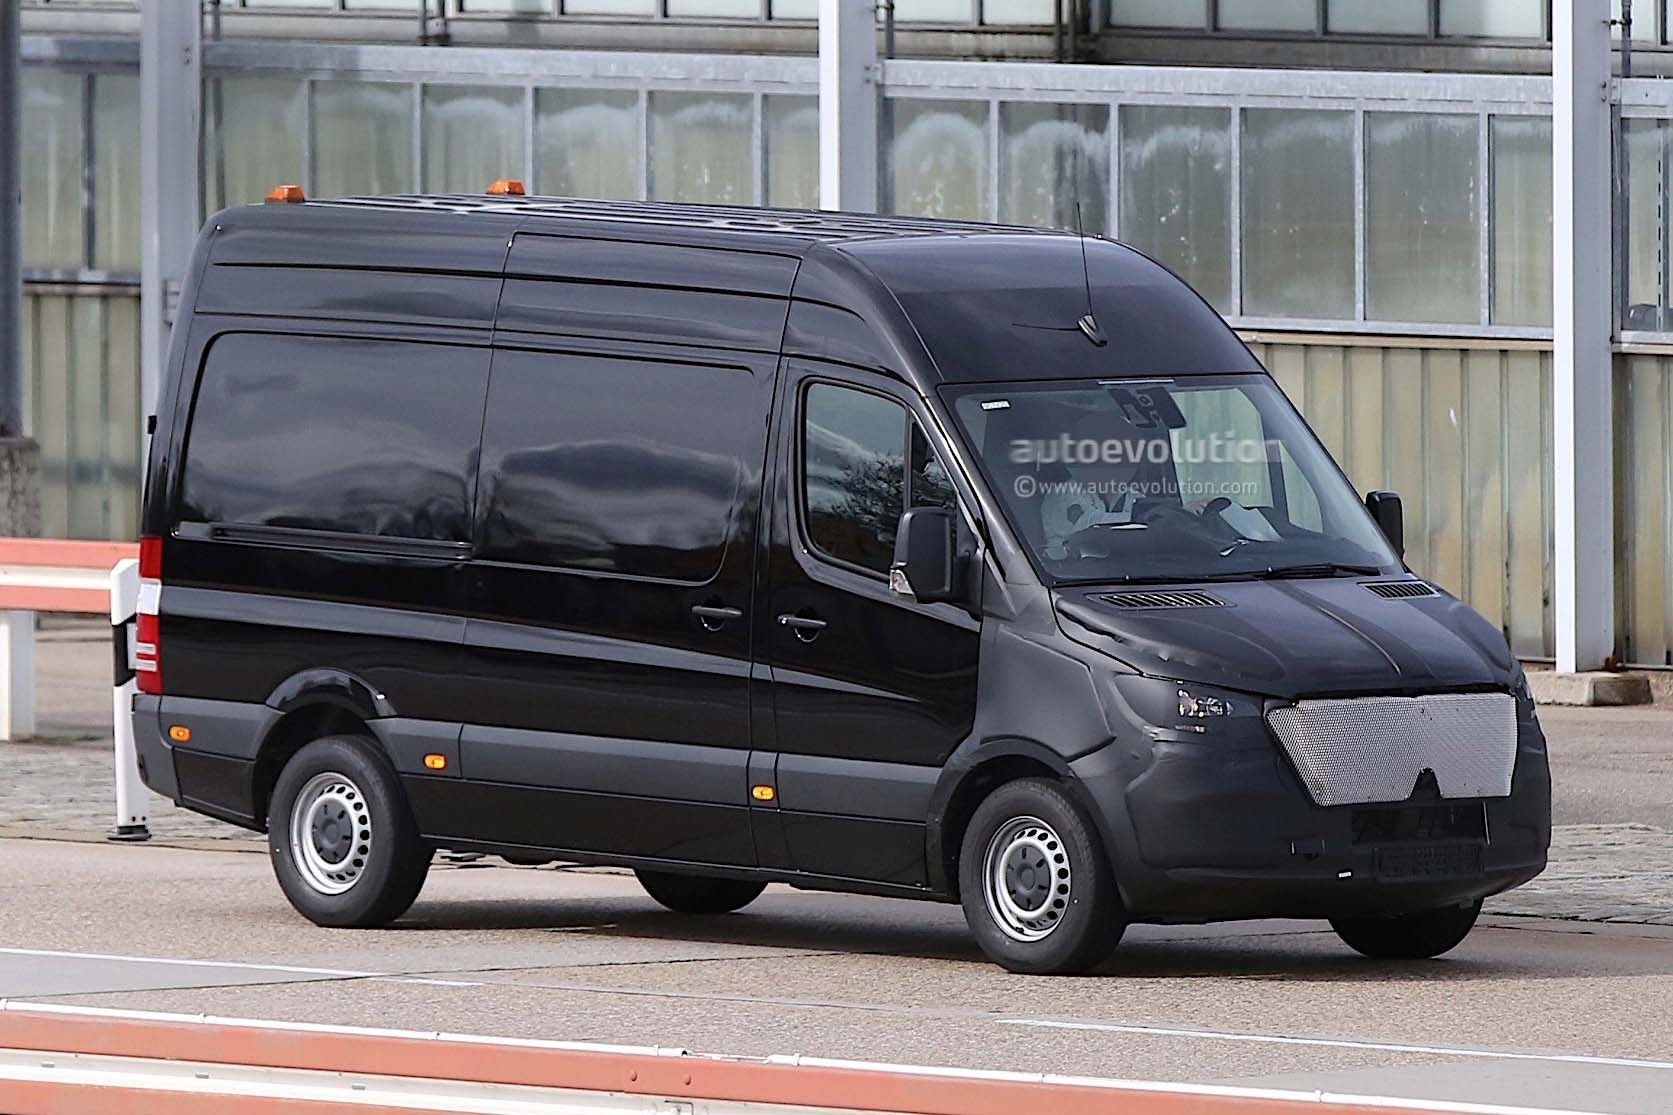 Mercedes Sprinter 2018 en phase d'essai